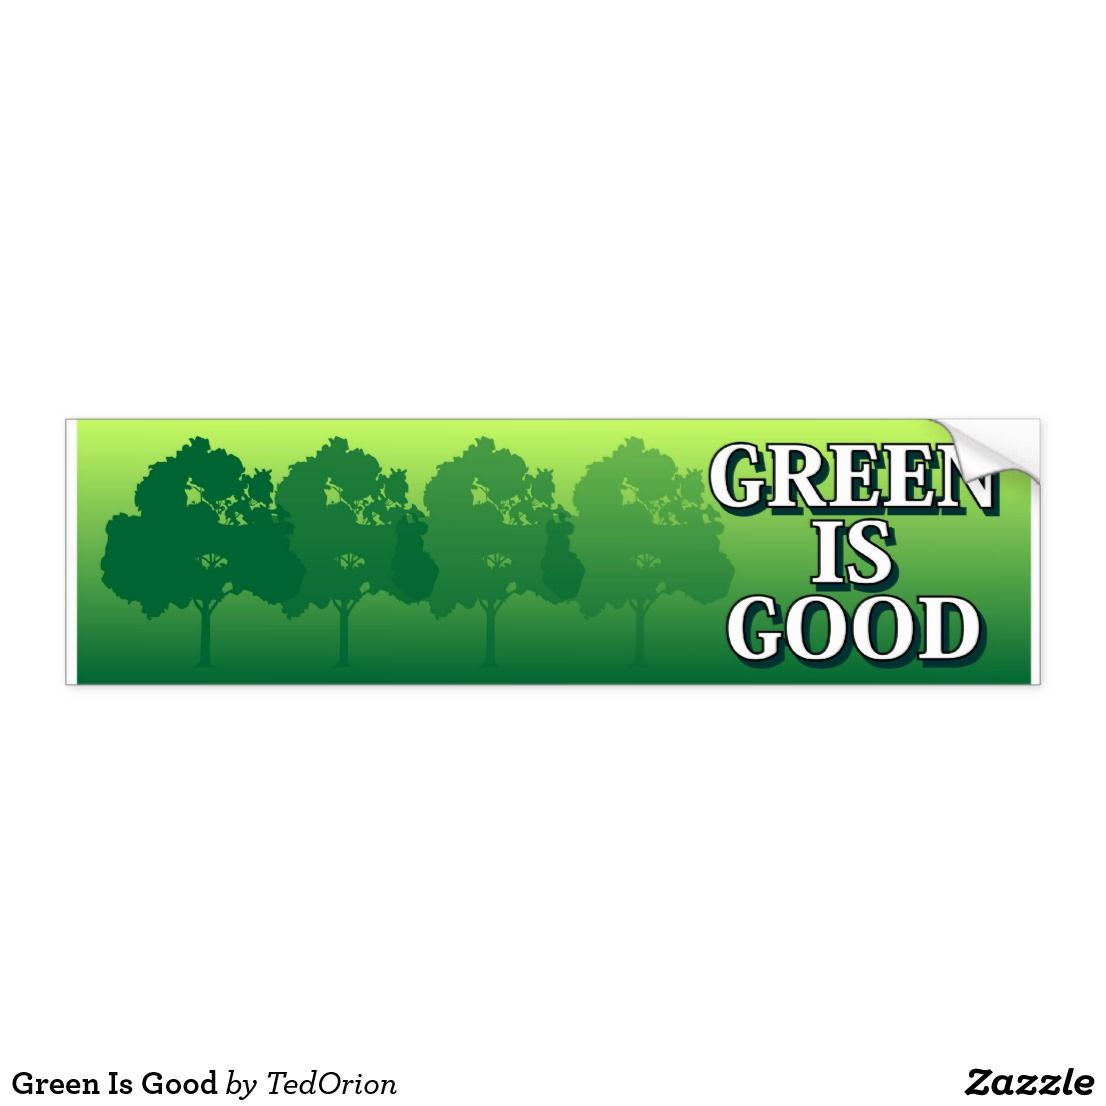 Green Is Good Bumper Sticker Zazzle Com Bumper Stickers Strong Adhesive Bumpers [ 1106 x 1106 Pixel ]